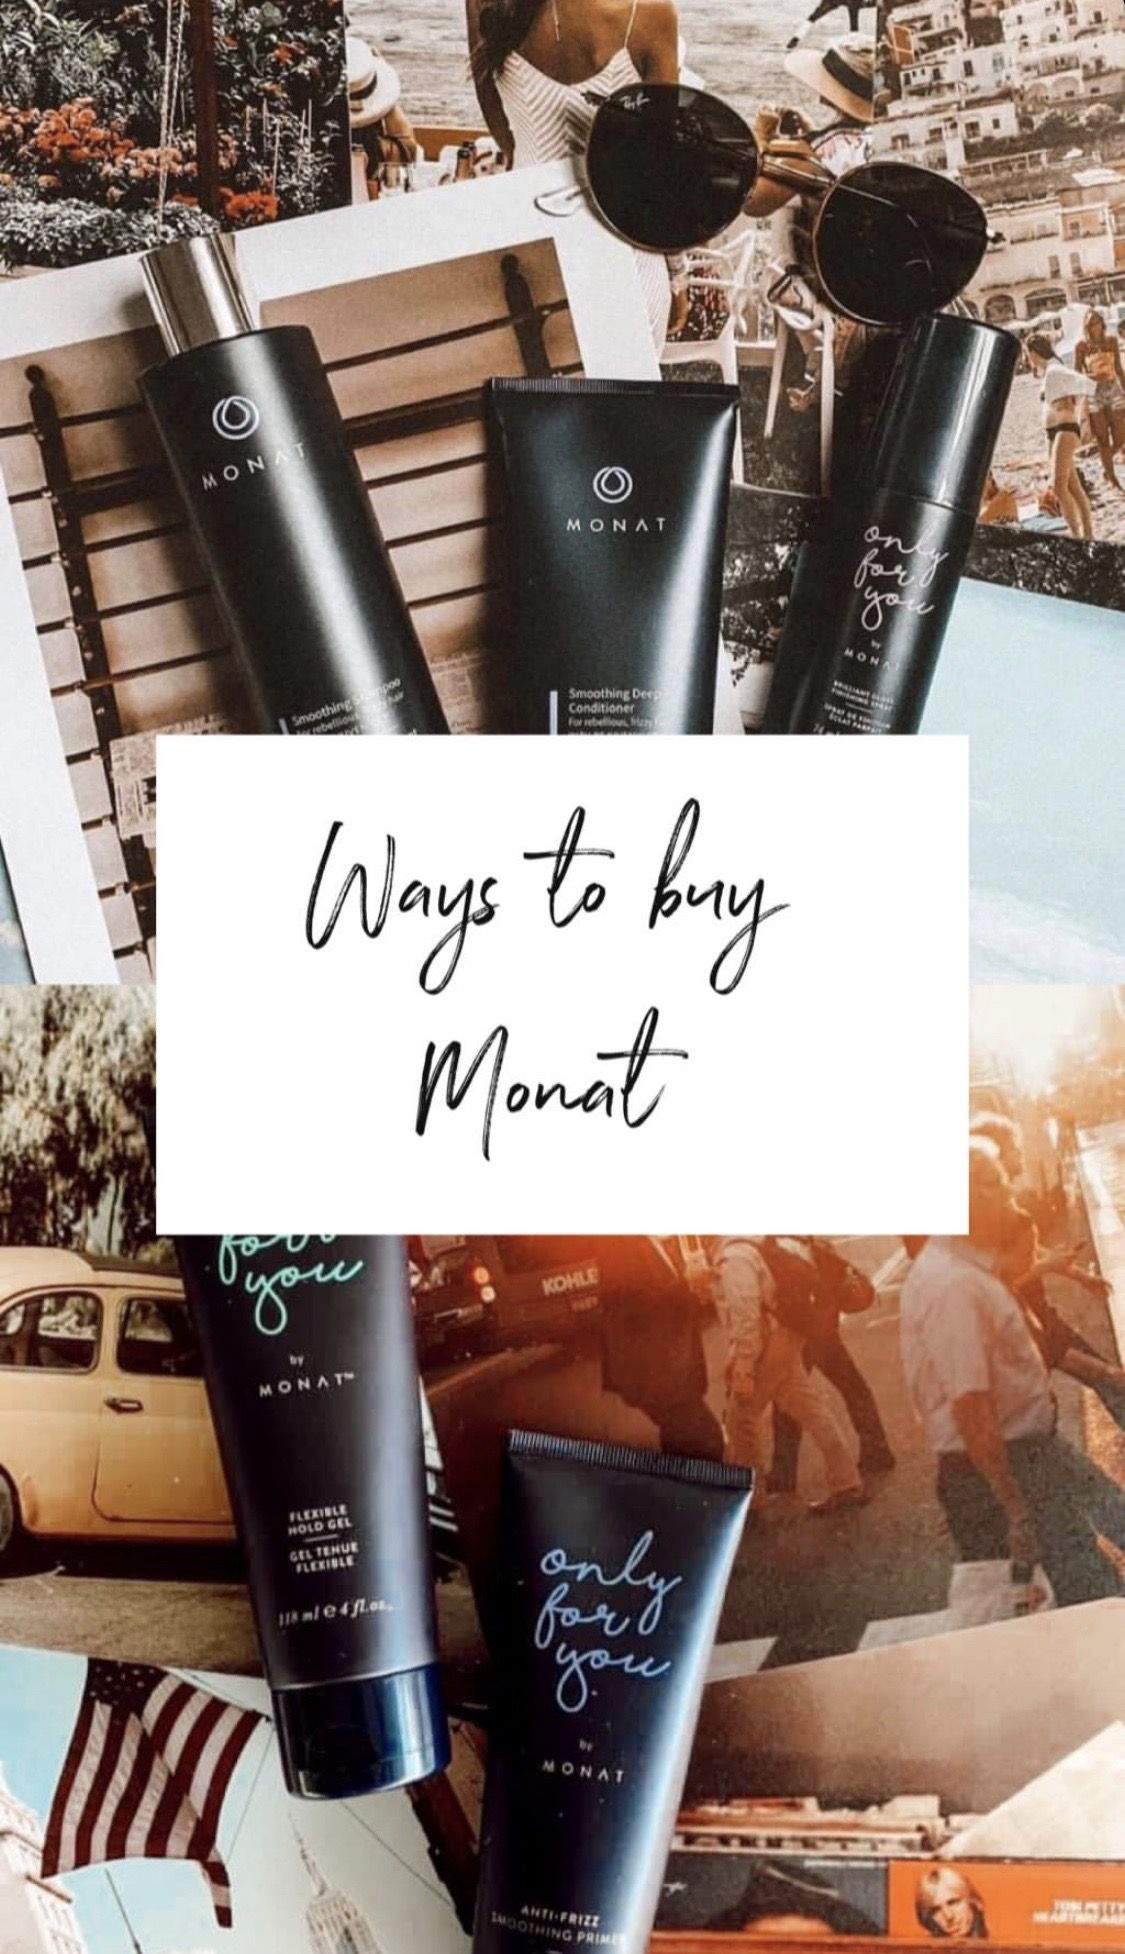 Pin by Megan's Monat Hair Lounge on Monat Pricing in 2020